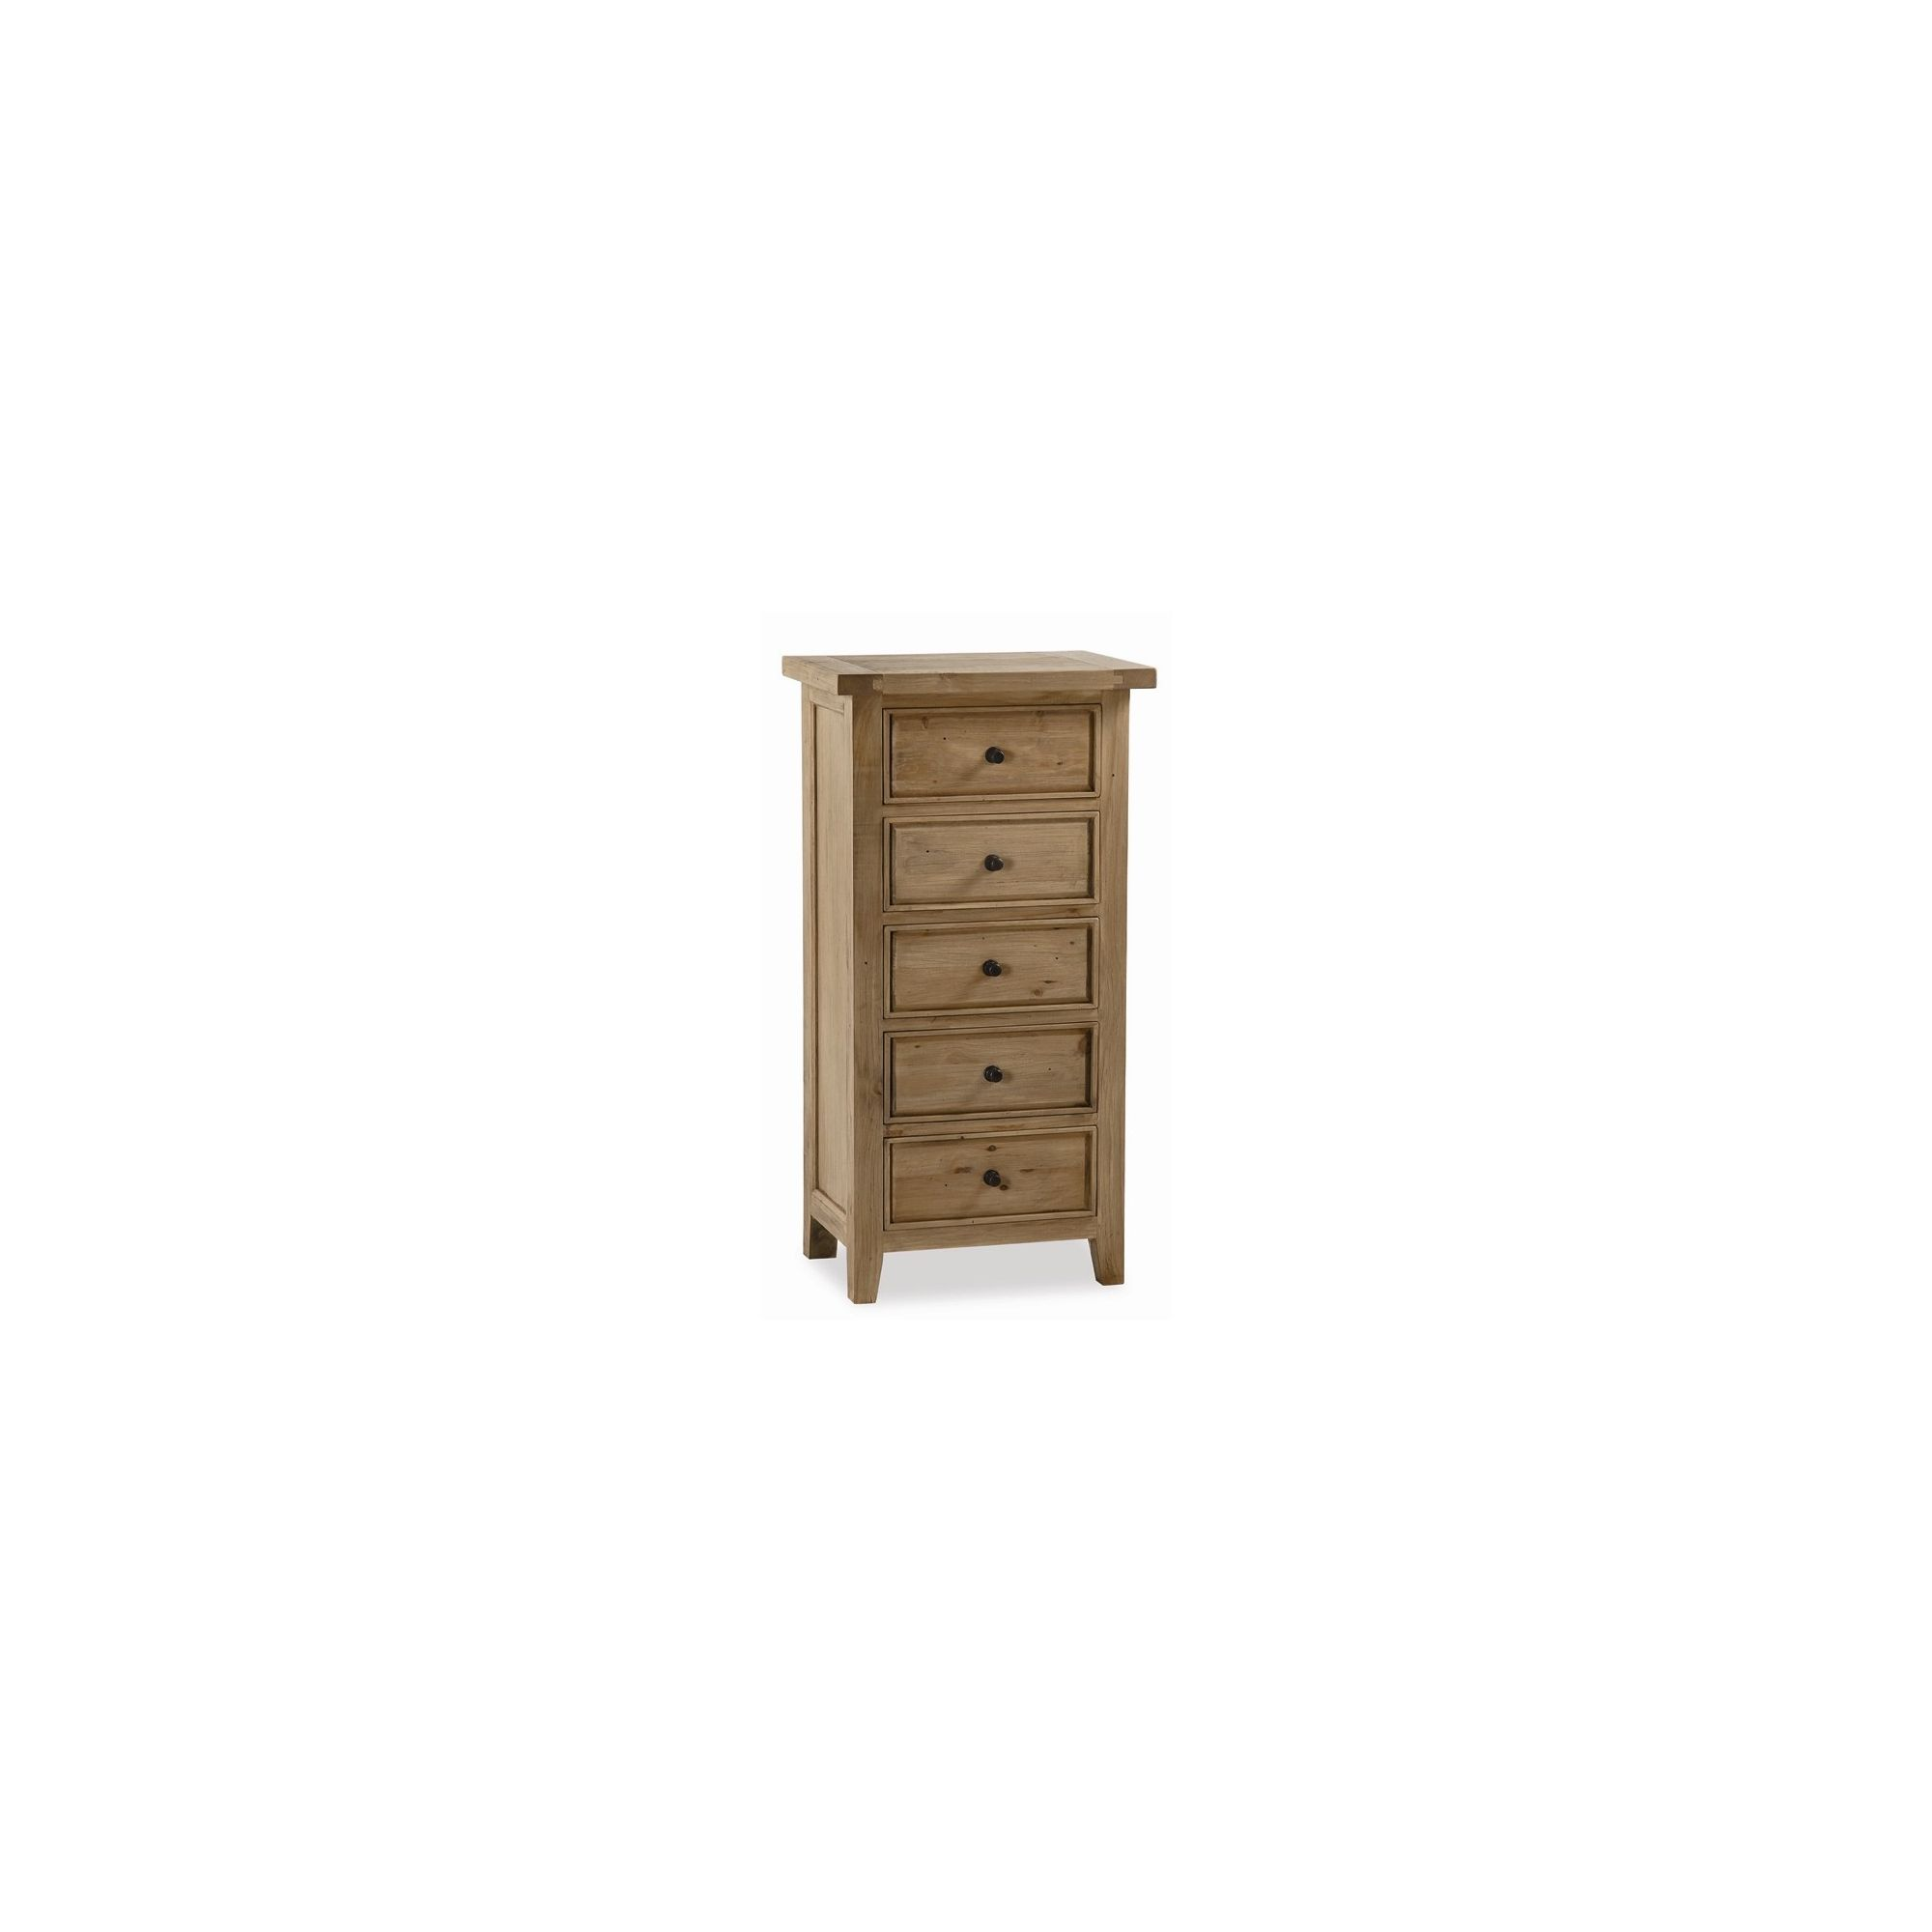 Alterton Furniture Naples Tallboy Chest at Tesco Direct